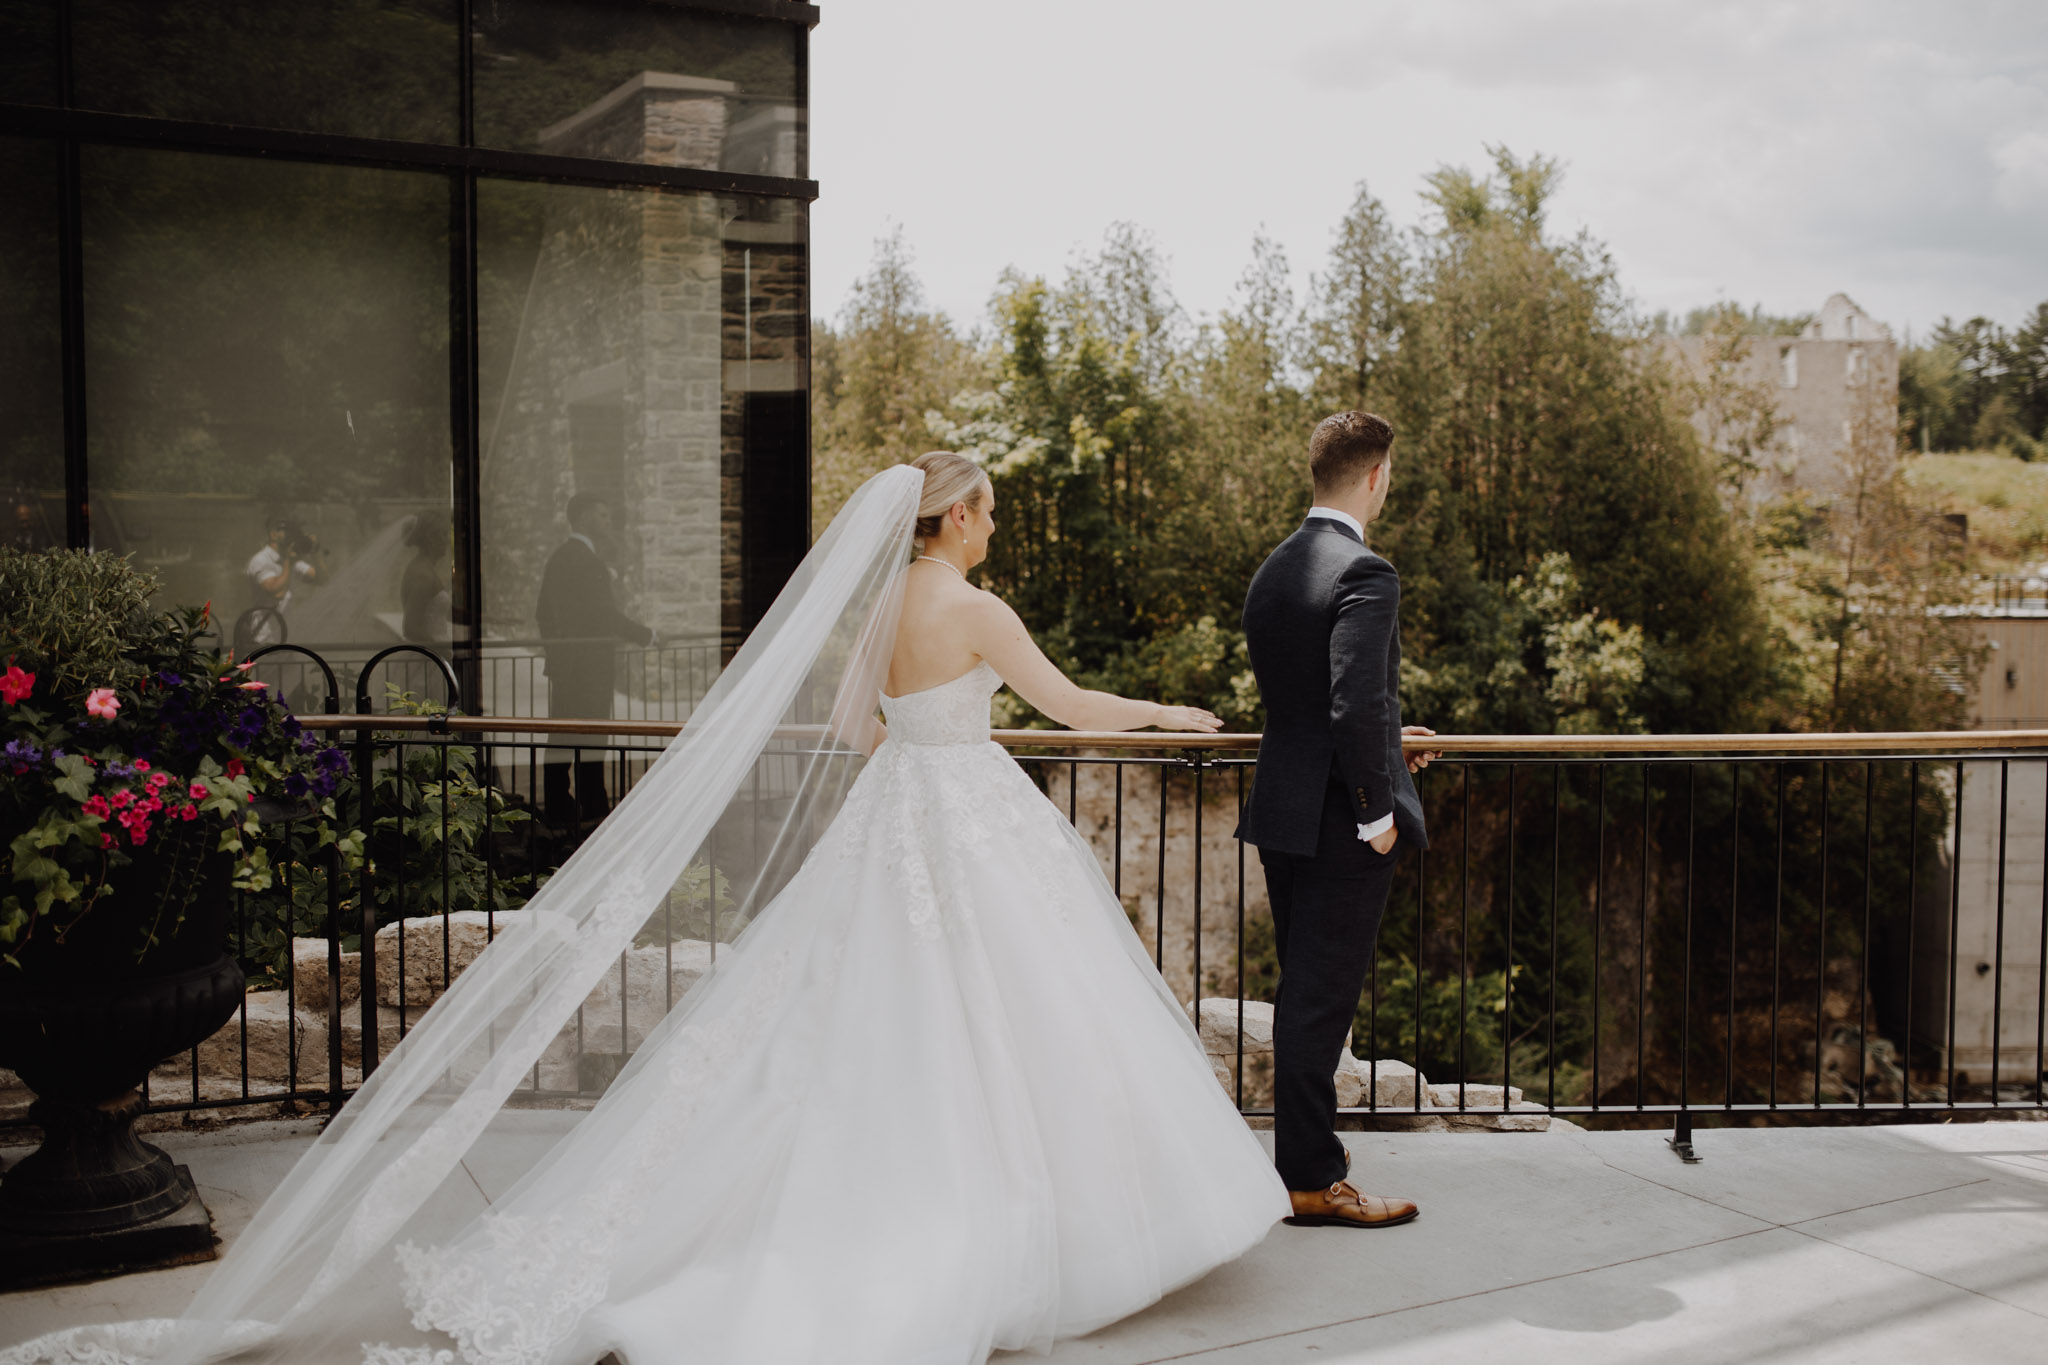 Elora Mill Wedding - first look on the balcony